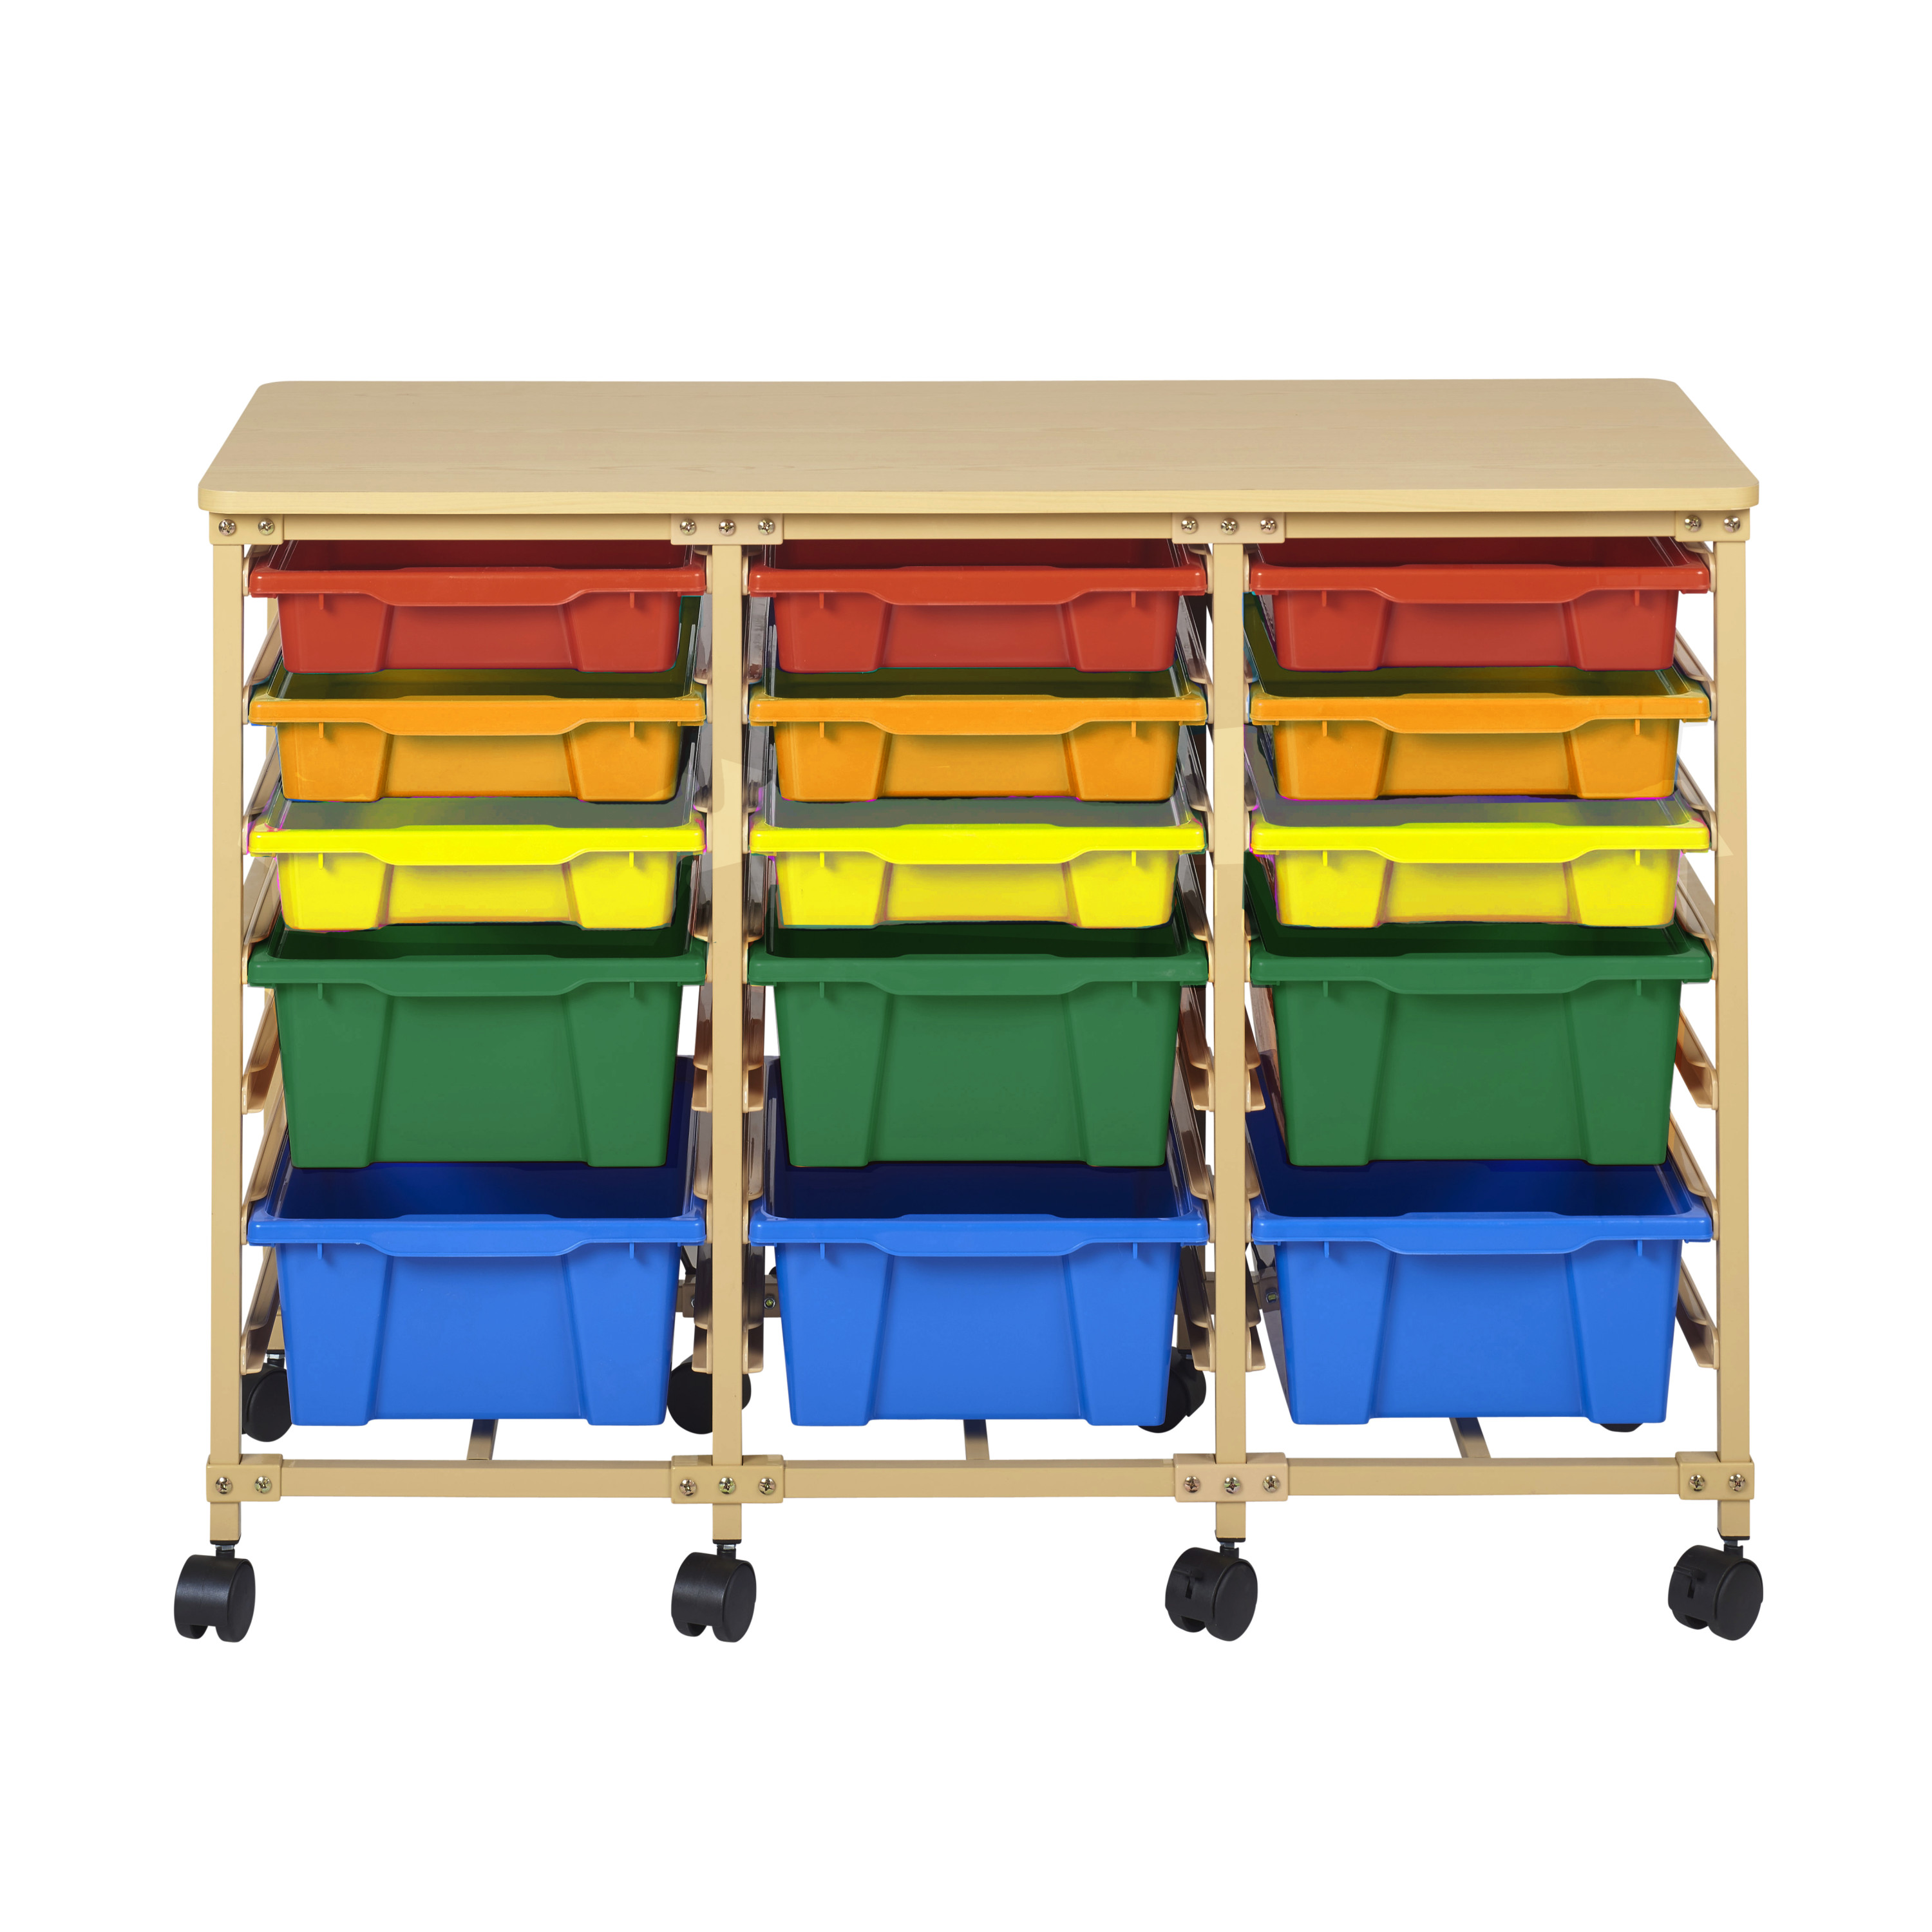 15-Tray Mobile Organizer Sand - Assorted Bins